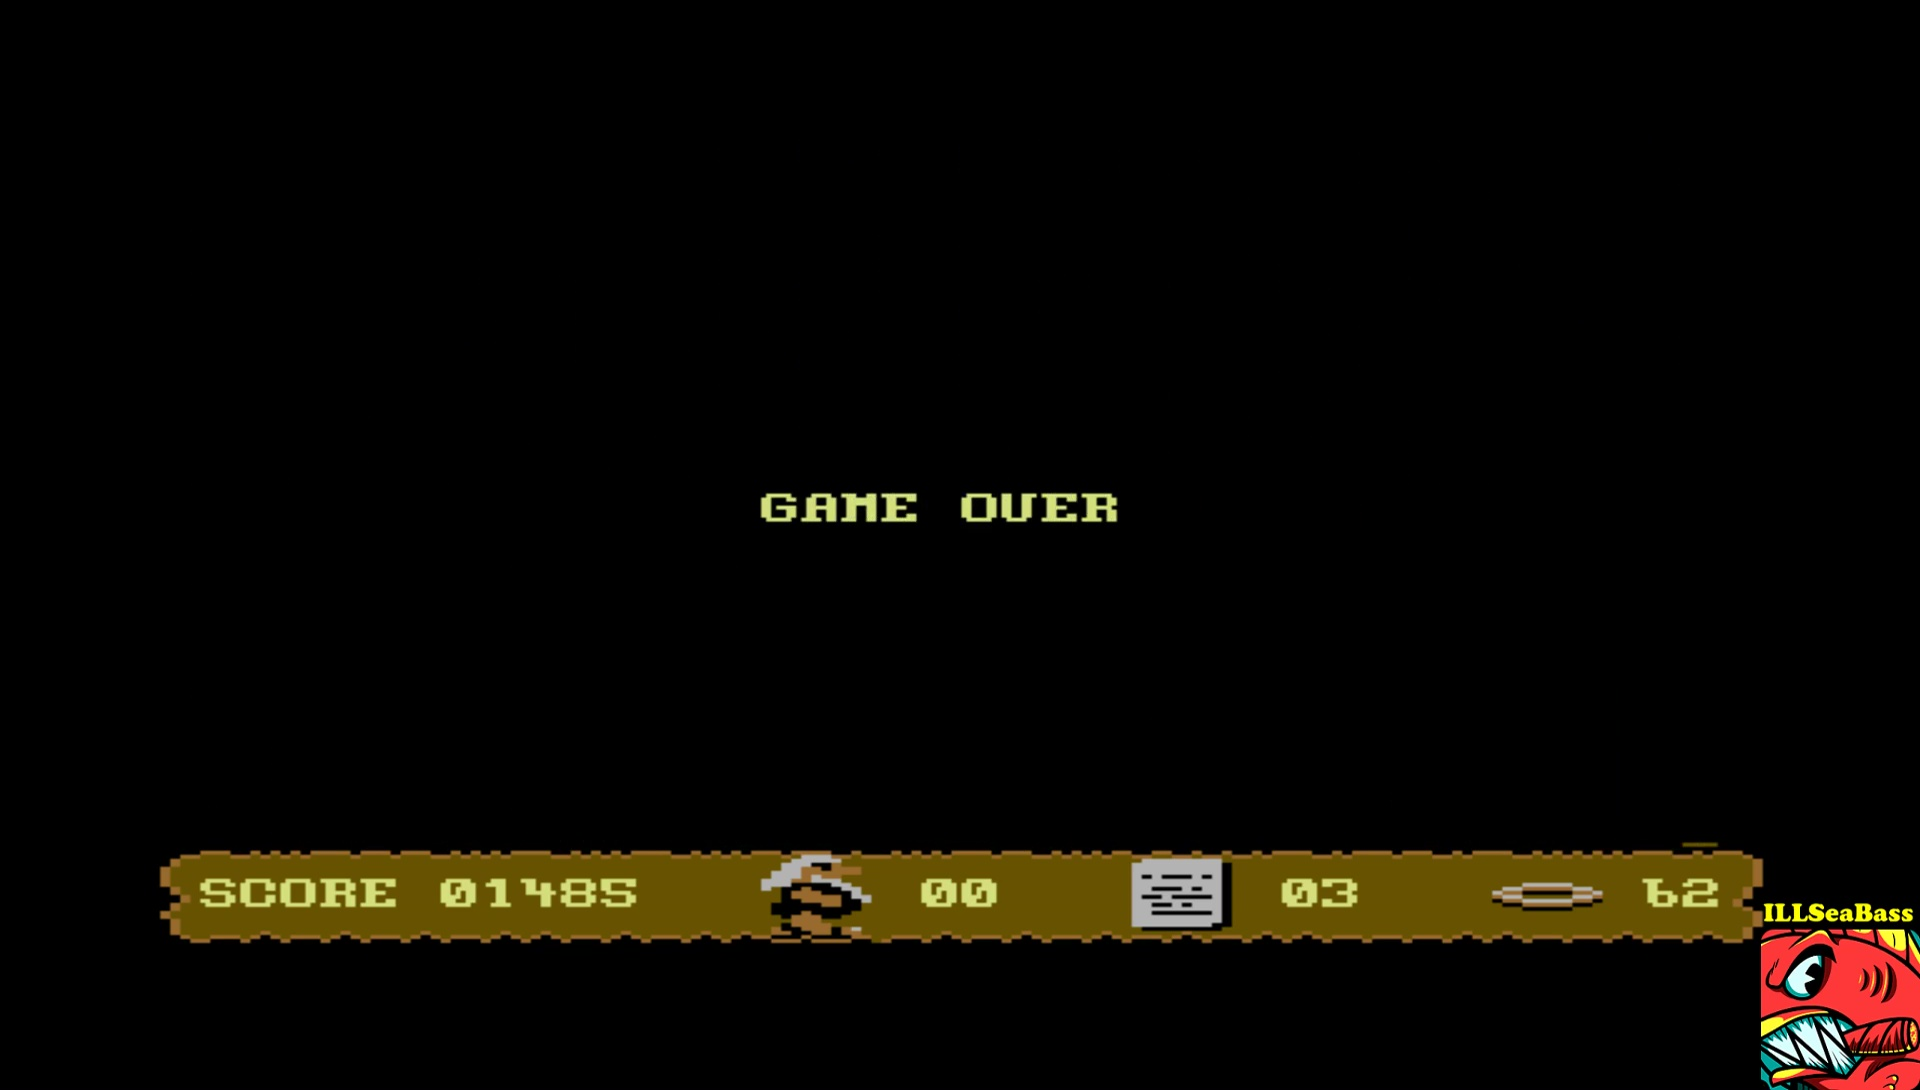 ILLSeaBass: To Hell and Back (Commodore 64 Emulated) 1,485 points on 2017-04-10 10:38:41